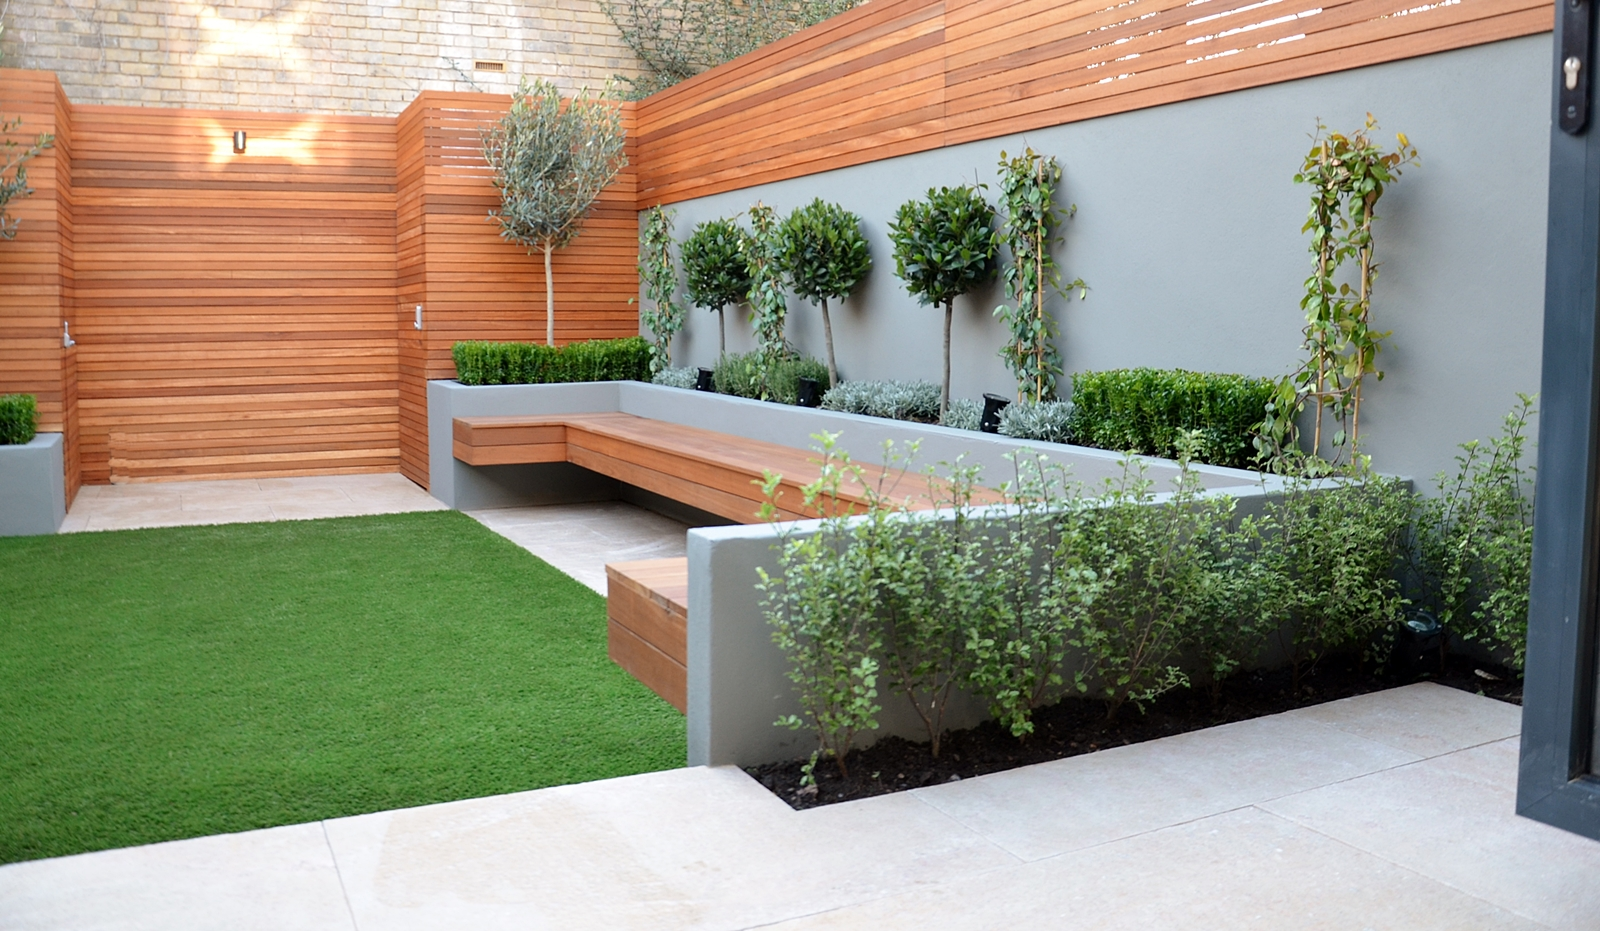 Clapham And London Garden Design 2015: designer gardens